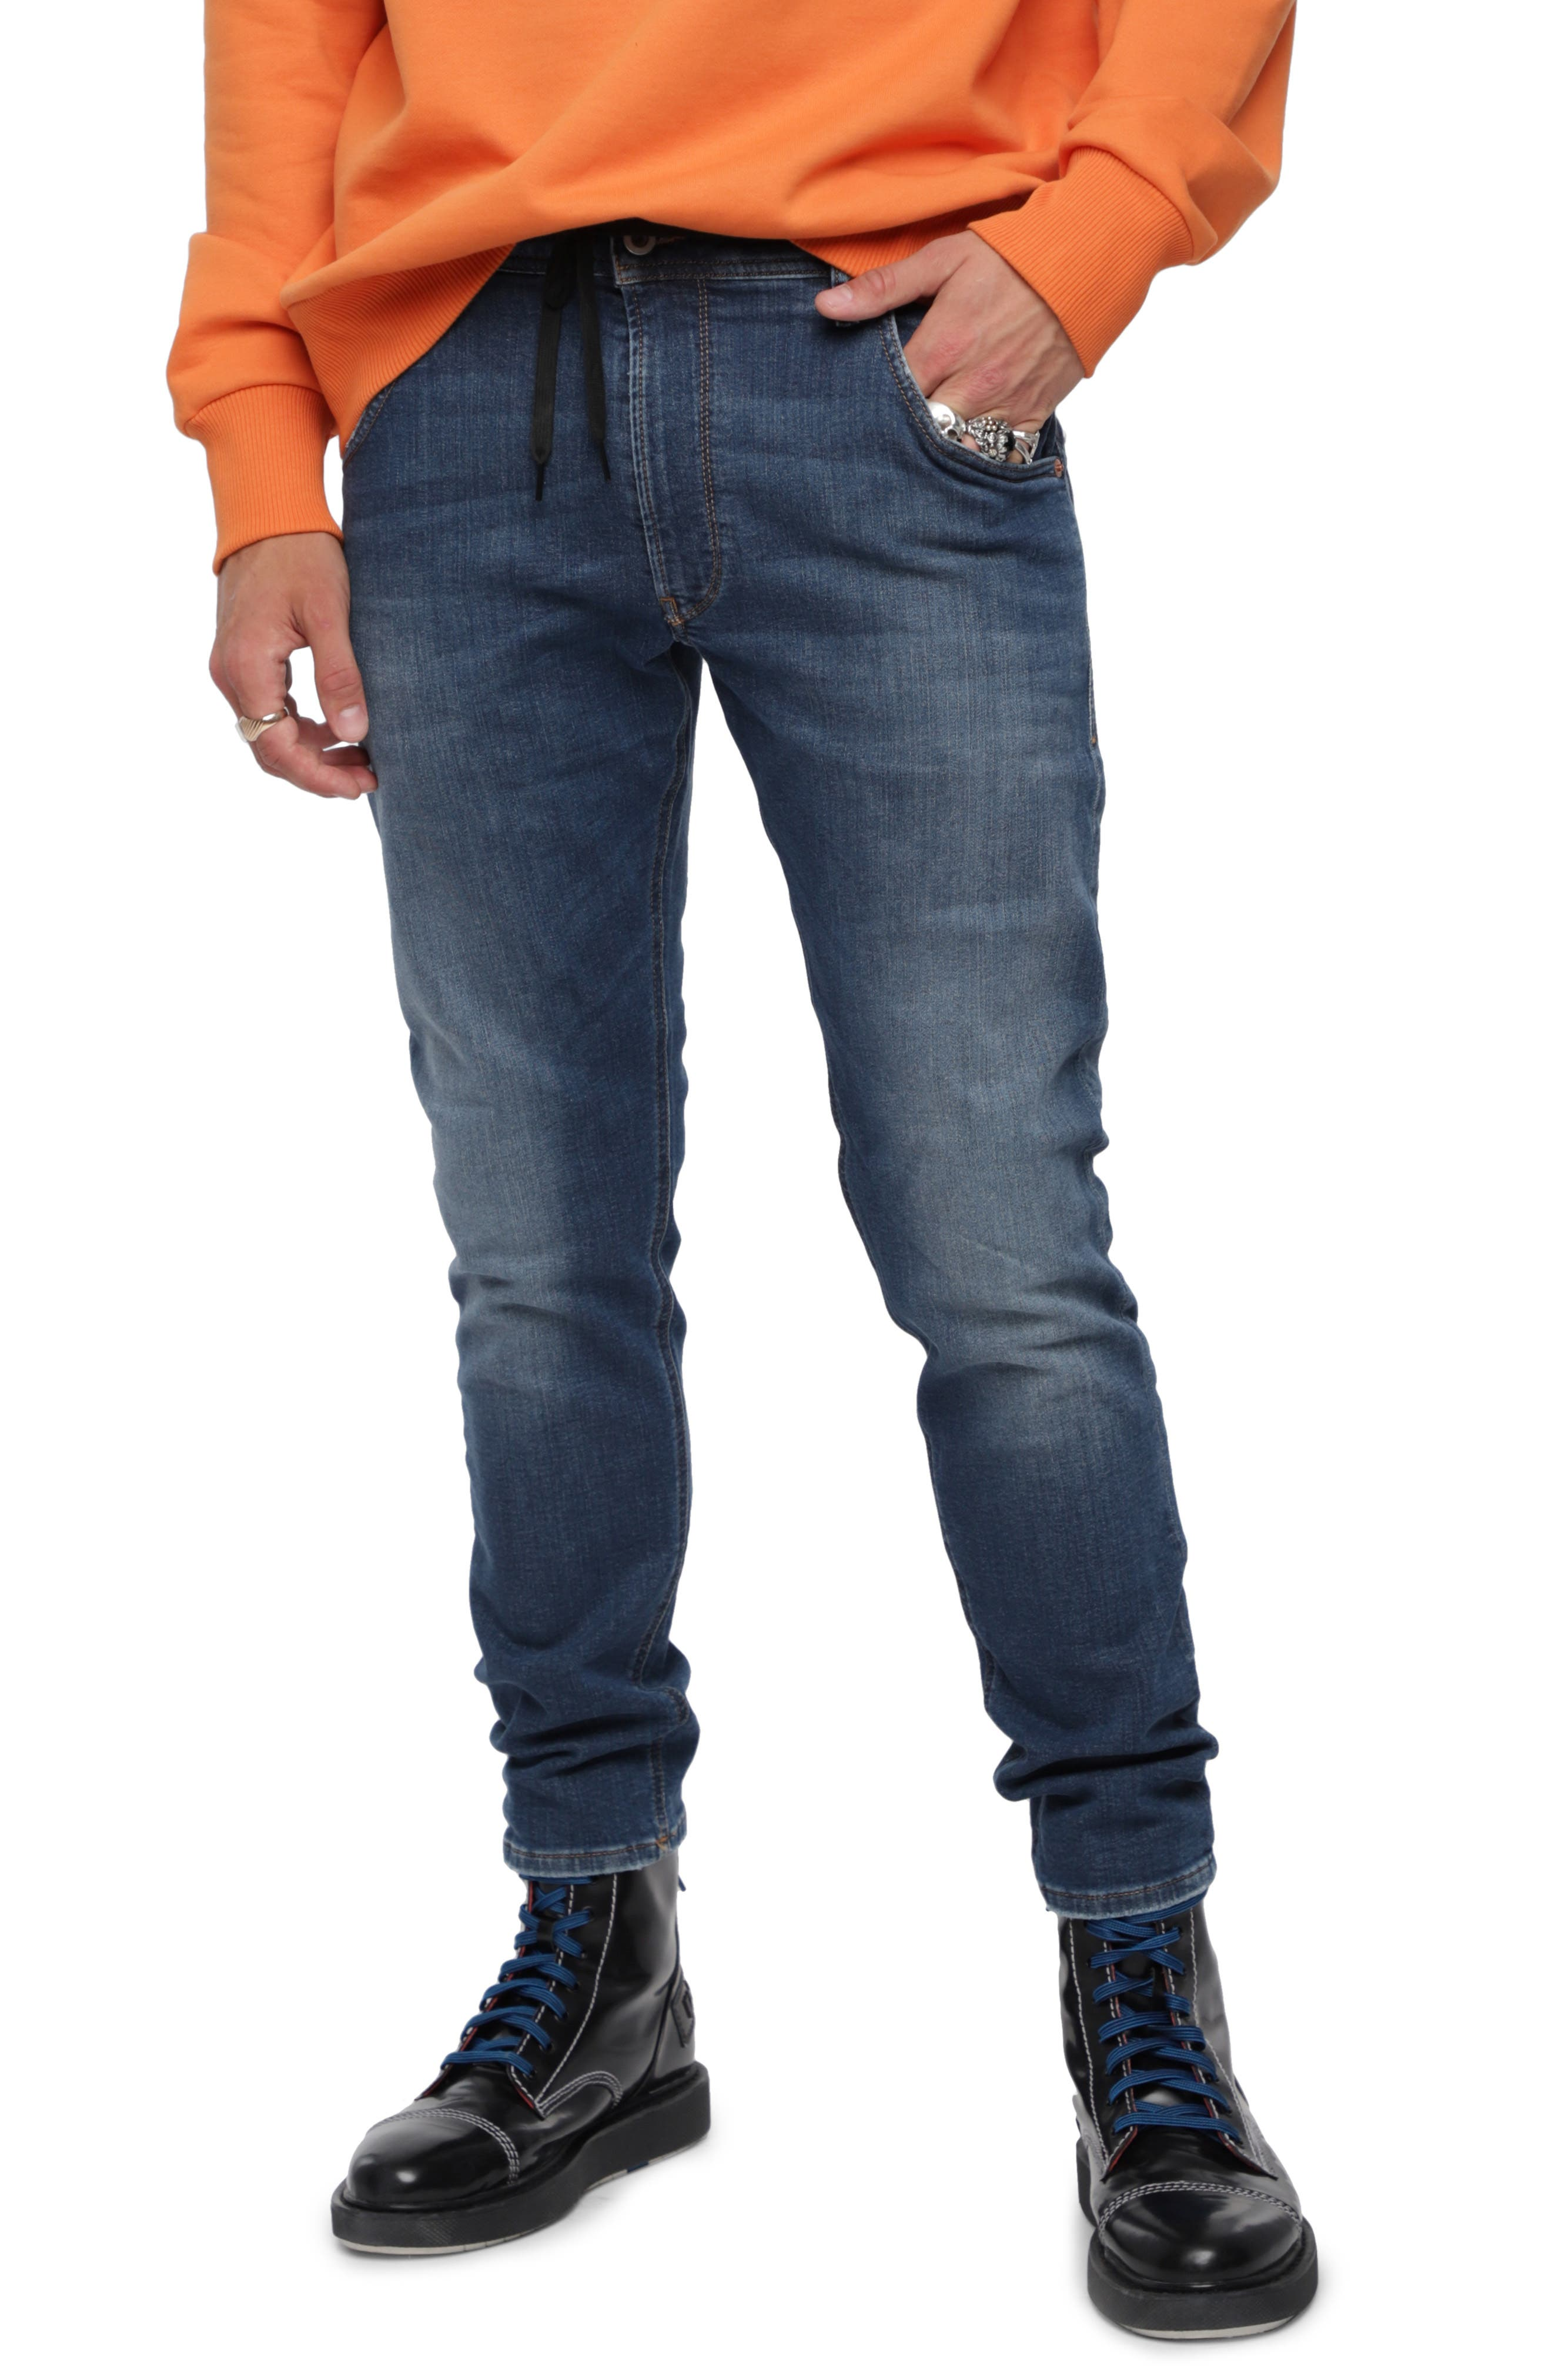 Krooley Jogg Slouchy Skinny Fit Jeans,                         Main,                         color, 084YM